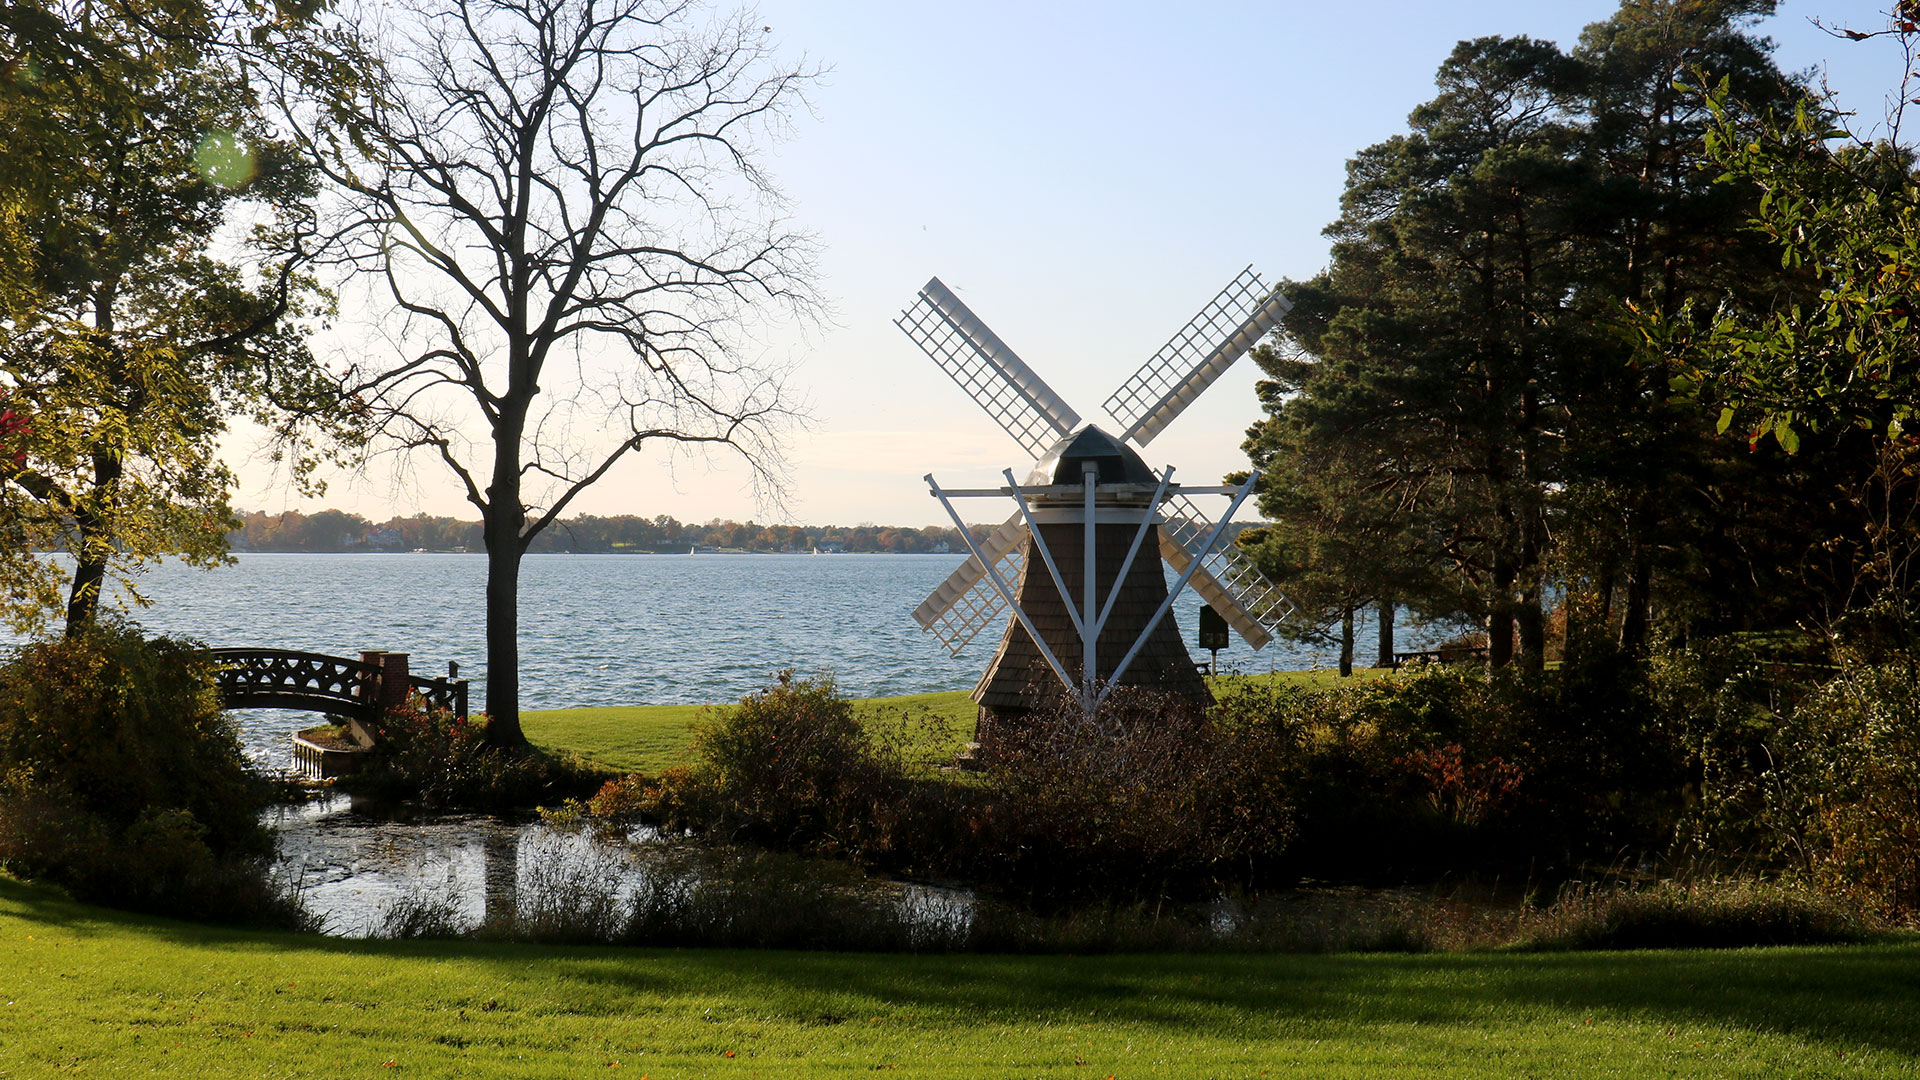 View of Gull Lake and the KBS windmill.